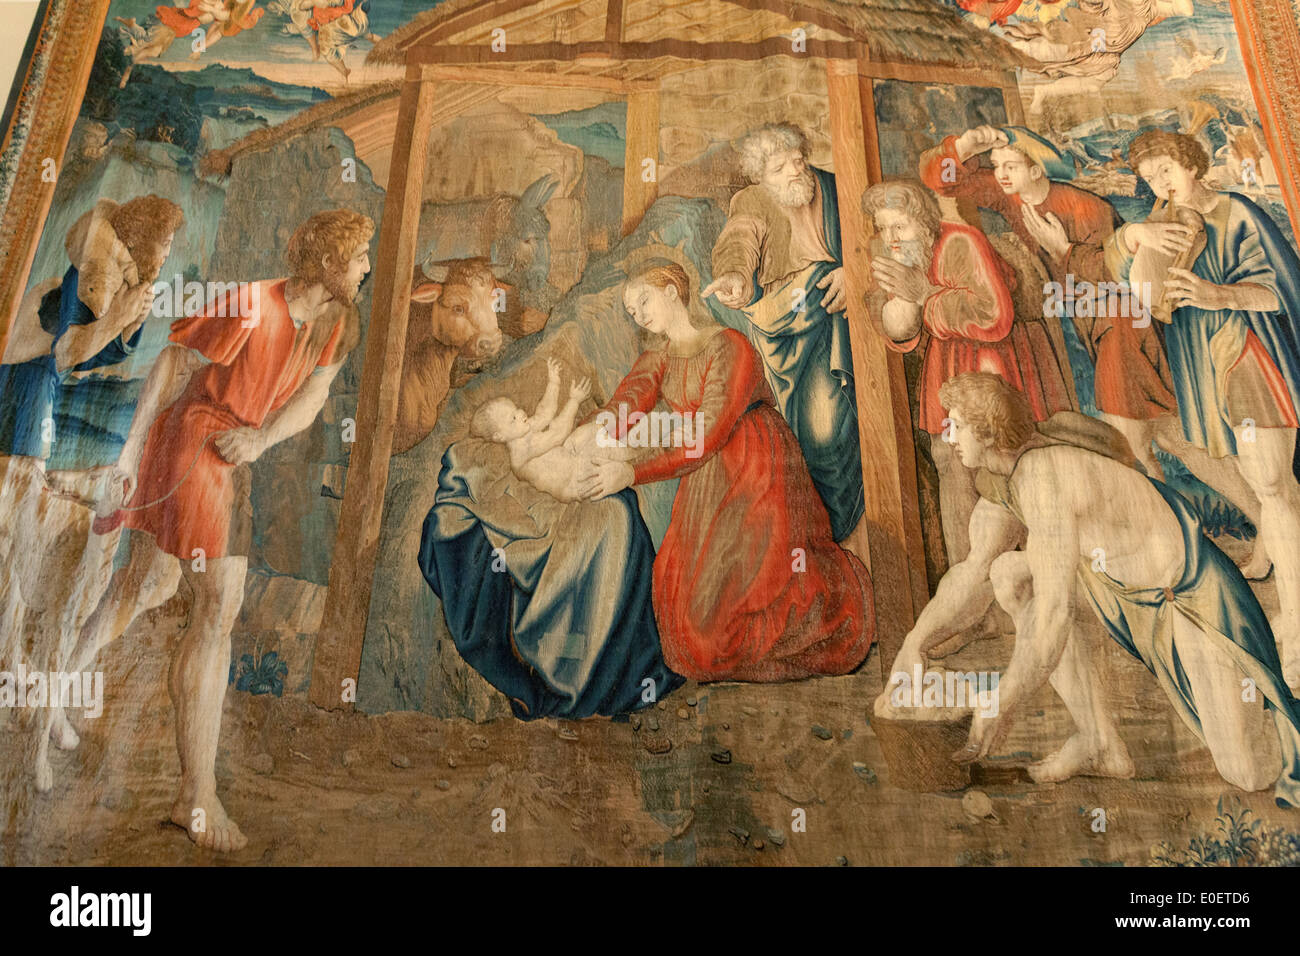 Tapestry showing the birth of Jesus Christ, the Gallery of Tapestries, Vatican Museums, Vatican City, Rome Italy - Stock Image